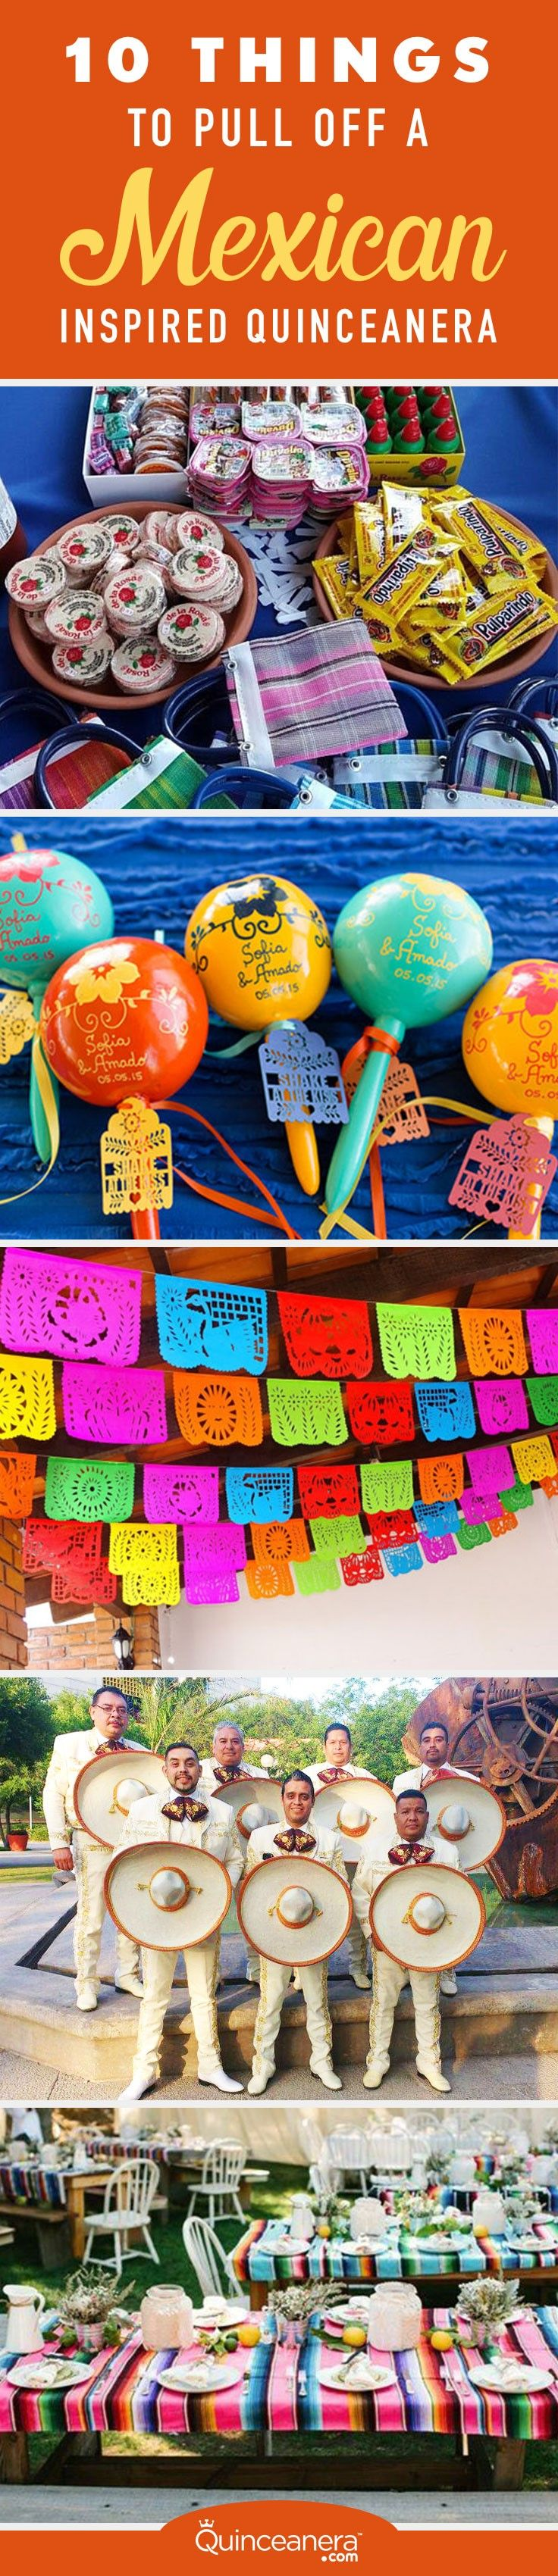 Planning aSeptember Quinceanera?Pay tribute to your Hispanic Heritage by painting your Quinceanera in cheerful Mexican colors and patriotic decorations.